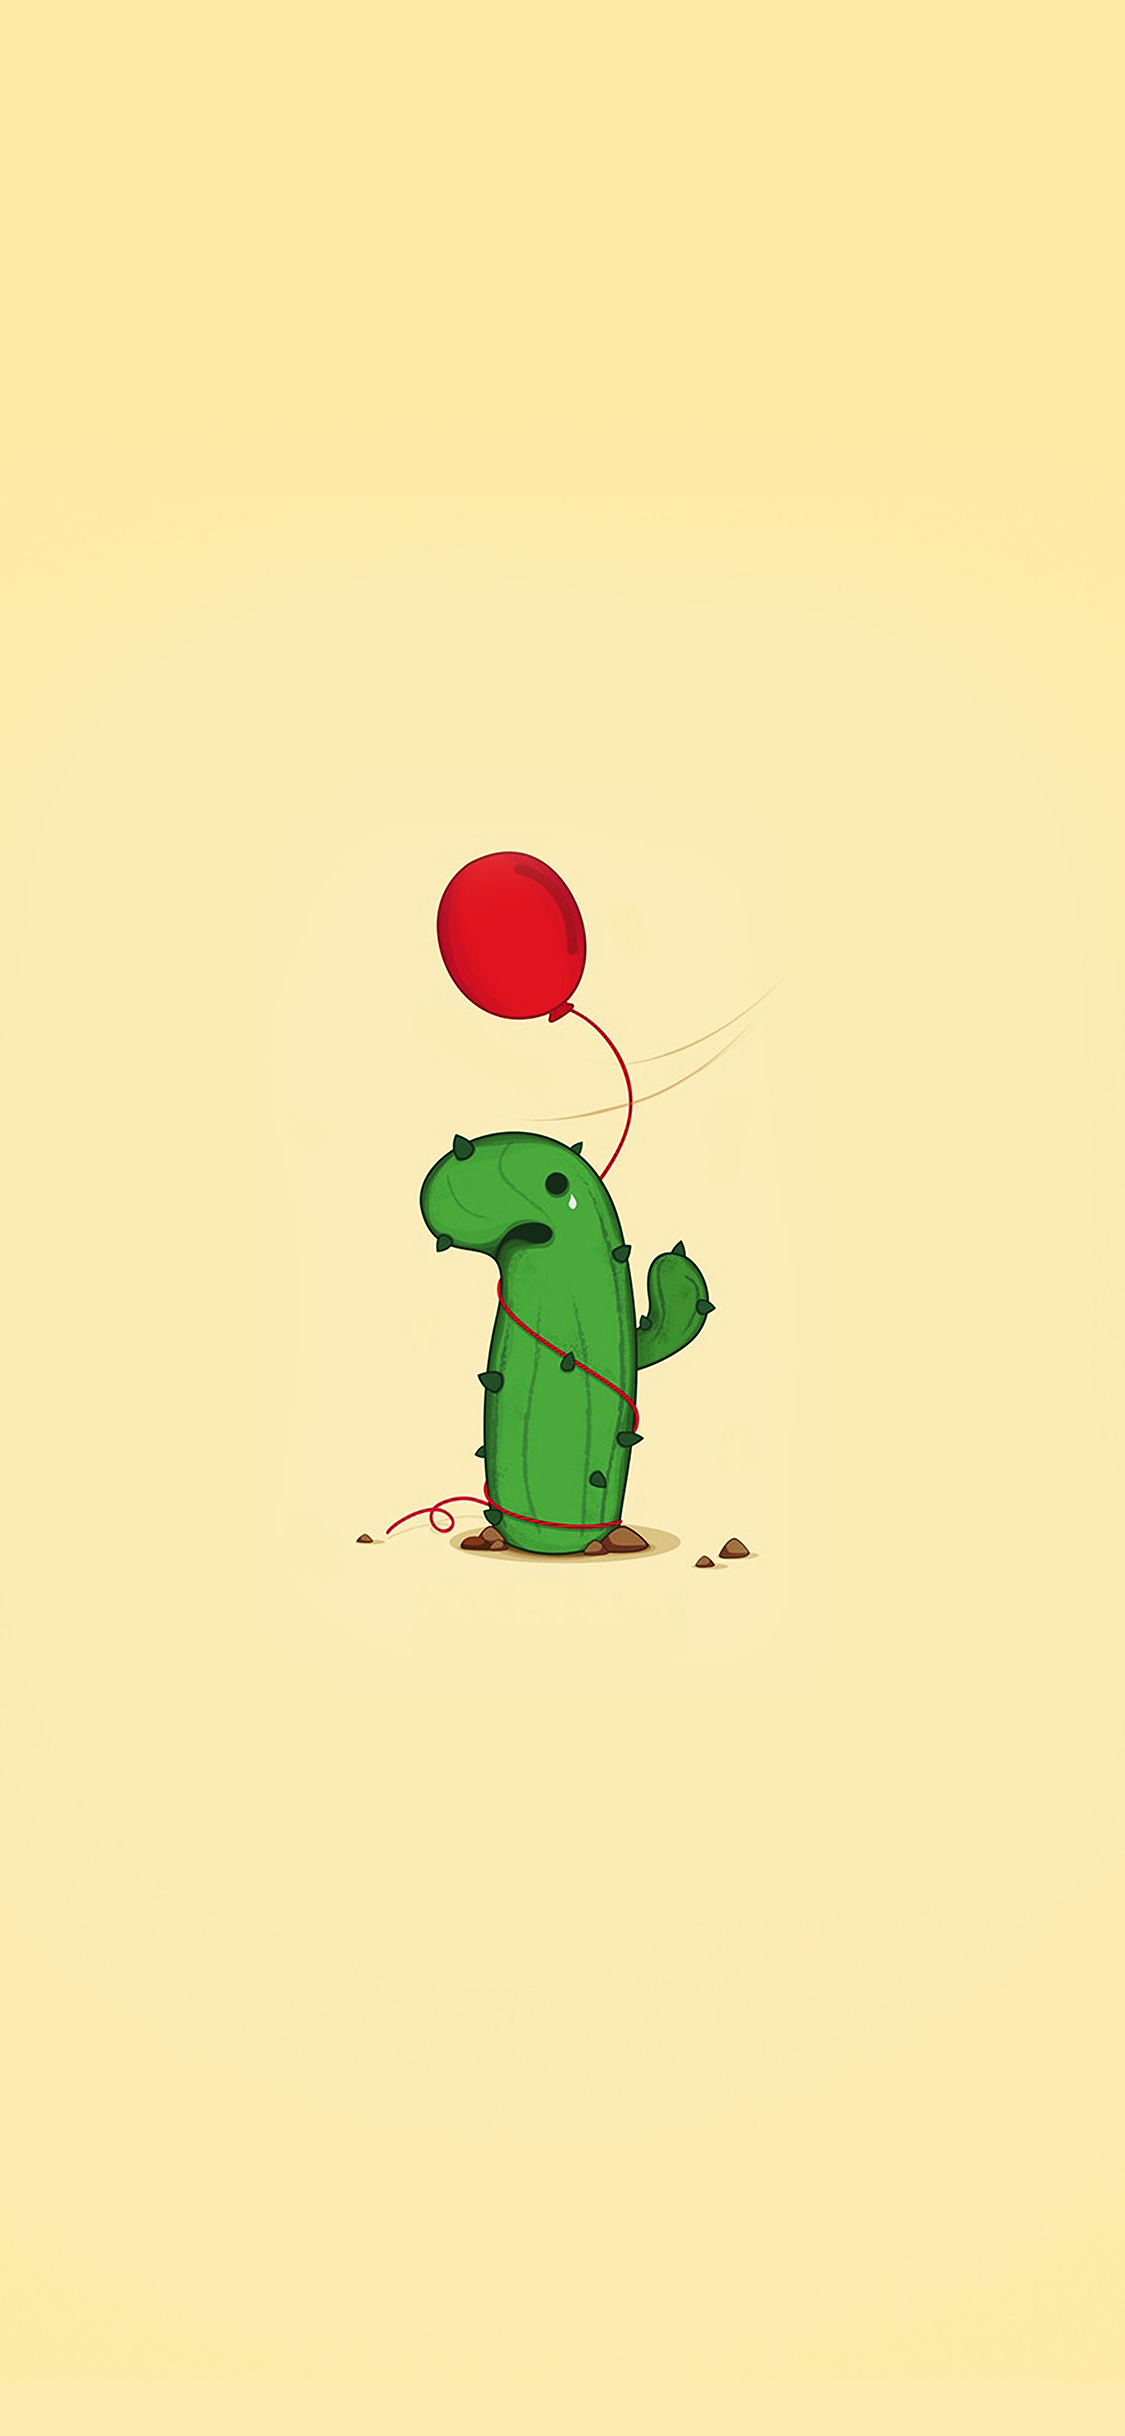 Apple Iphone Background Wallpapers Ai35 Cute Cactus Ballon Illust Art Minimal Papers Co